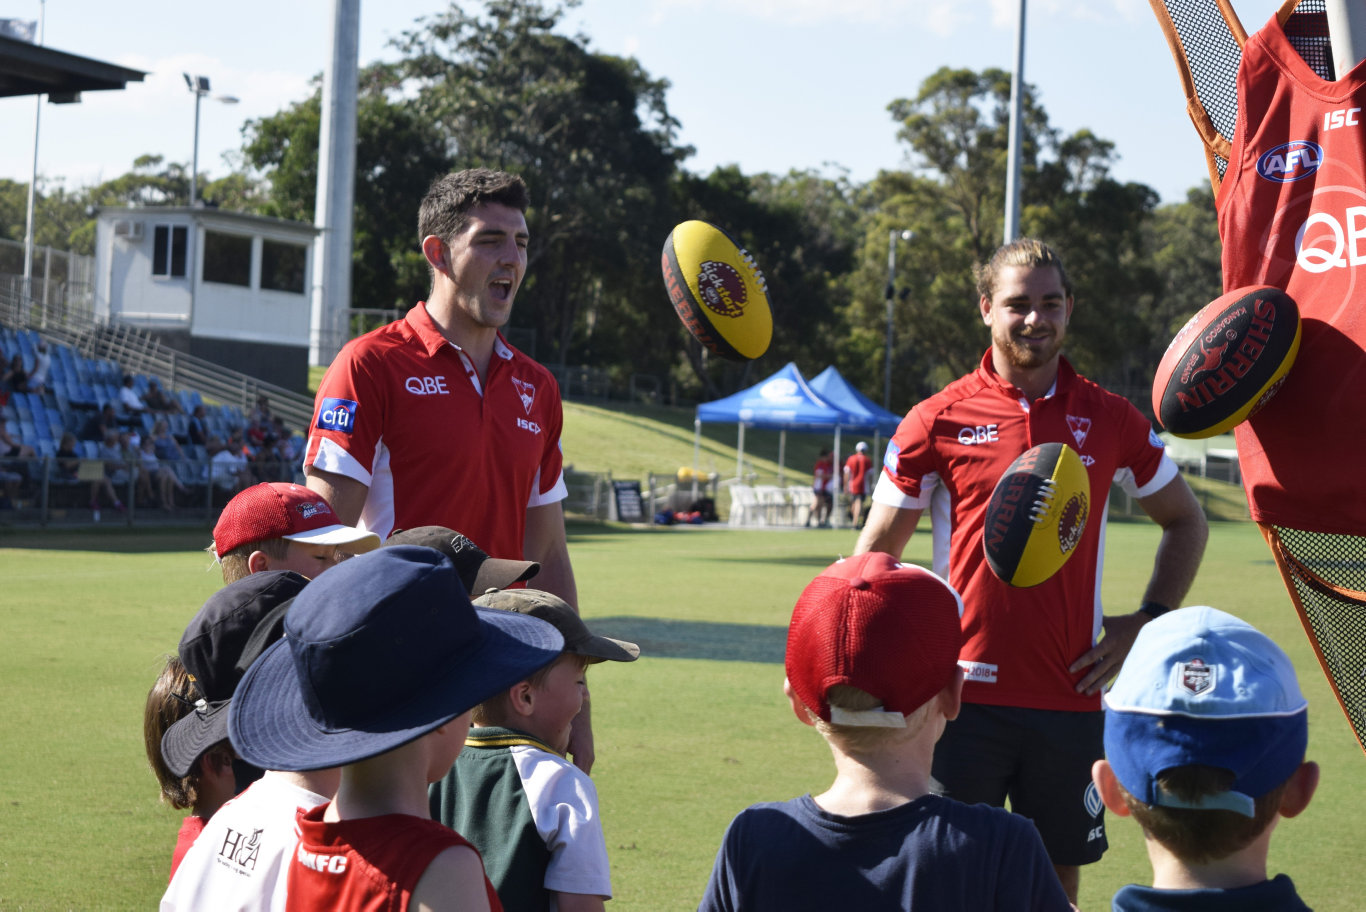 The Sydney Swans conducted a junior AFL clinic for young locals at the C.ex Coffs International Stadium. 14 February 2018 Photo: Brad Greenshields/Coffs Coast Advocate